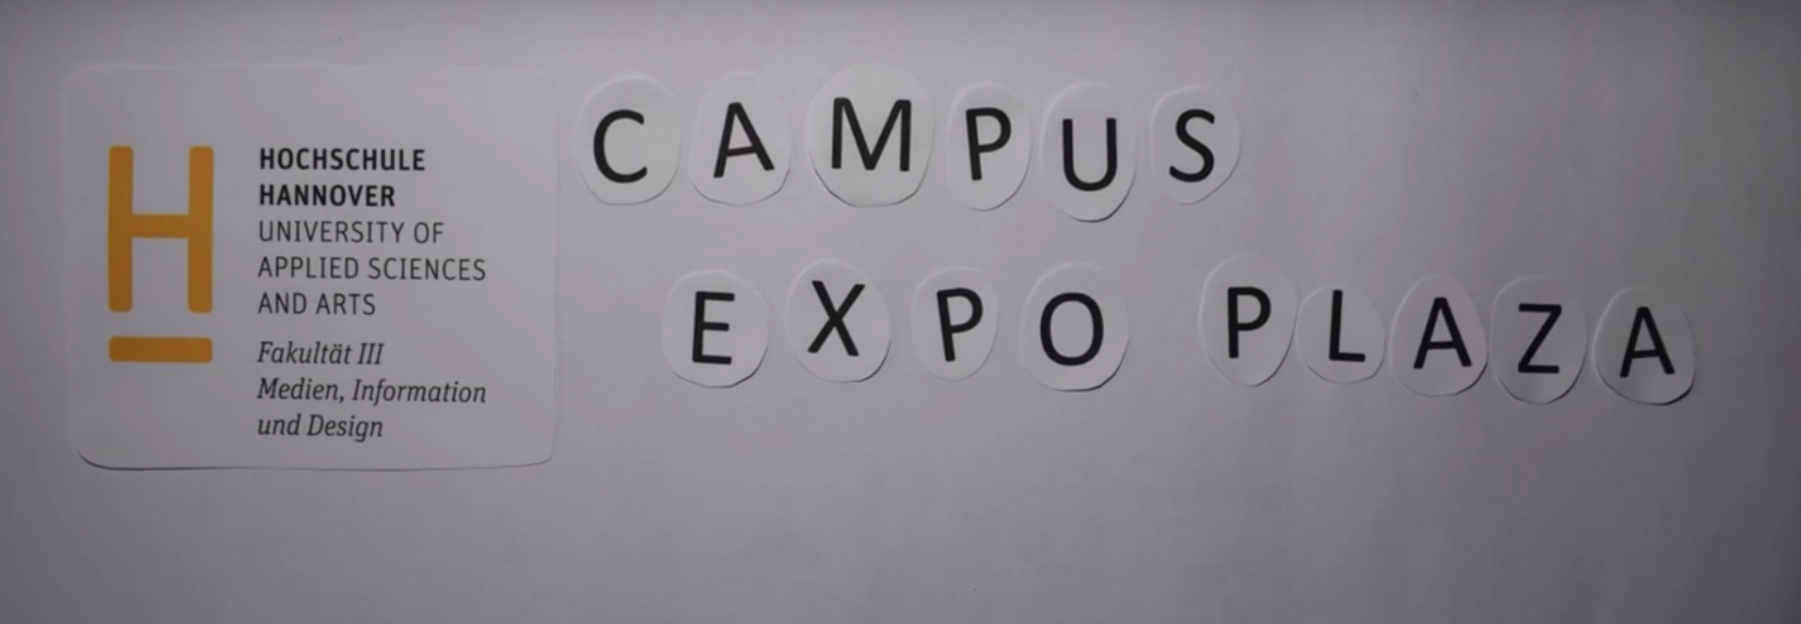 Campus Expo Plaza